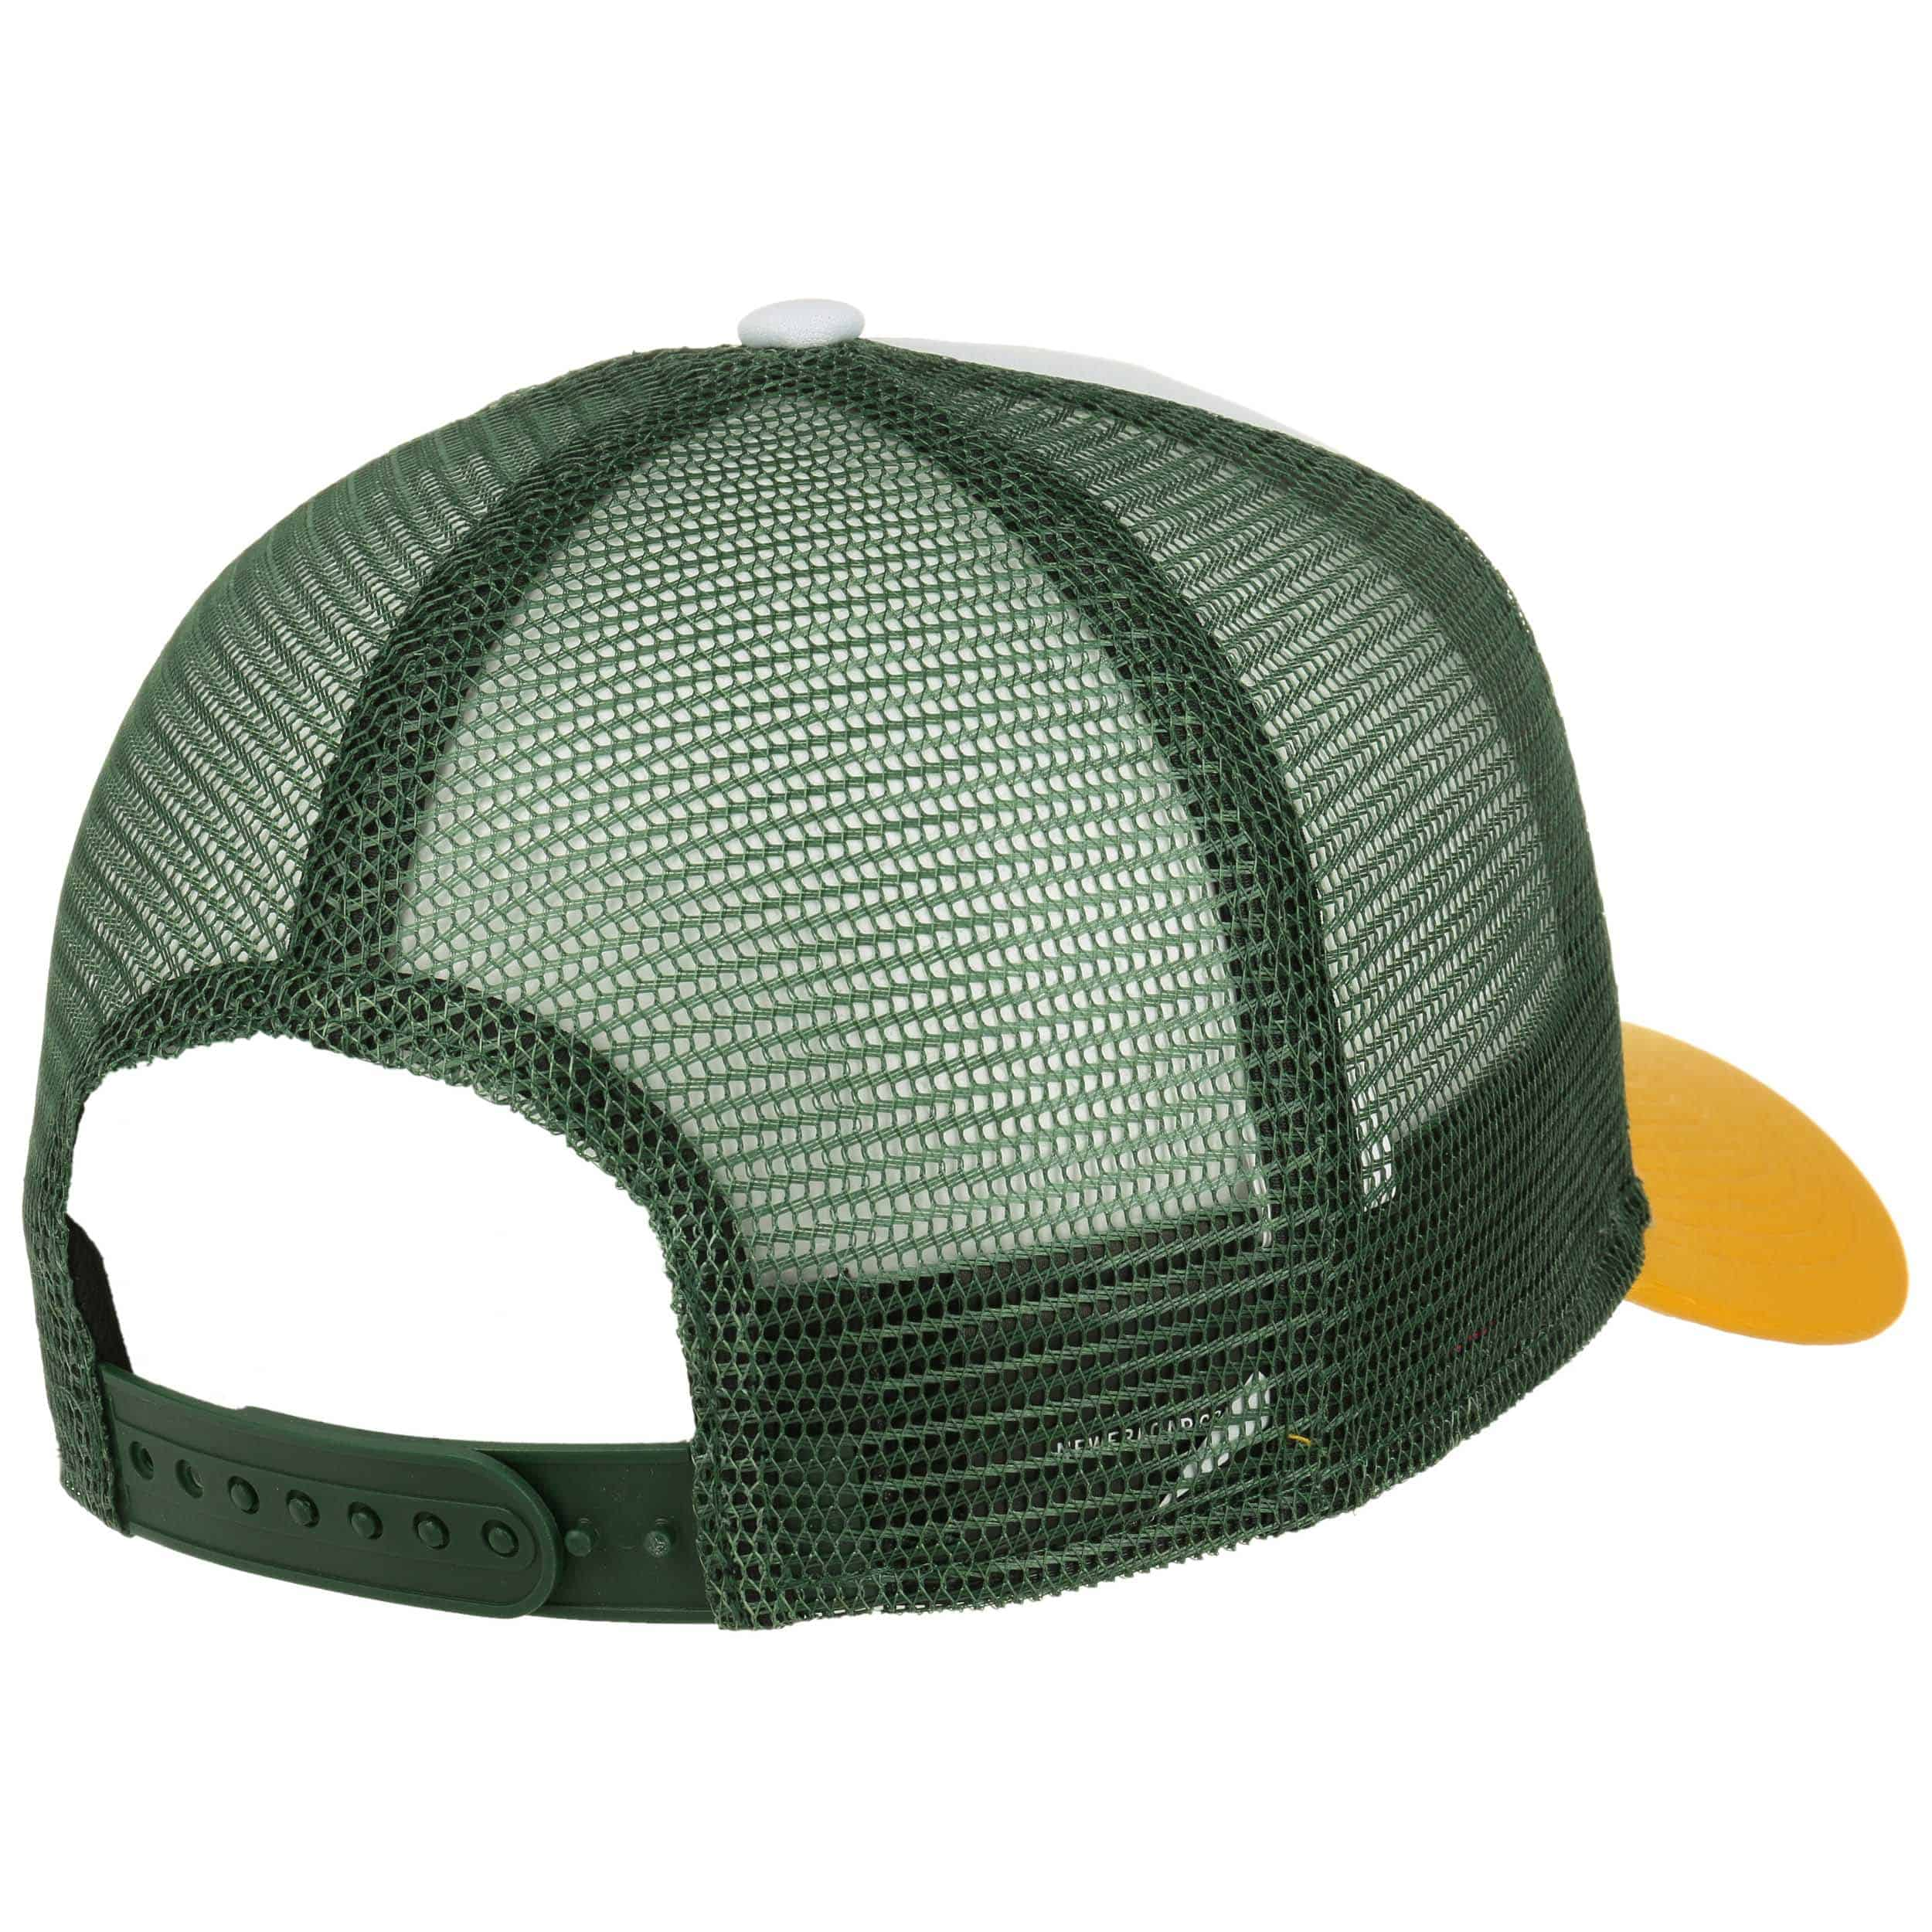 0d7b8e62faa9 ... Casquette NFL Throwback Packers by New Era - blanc 3 ...